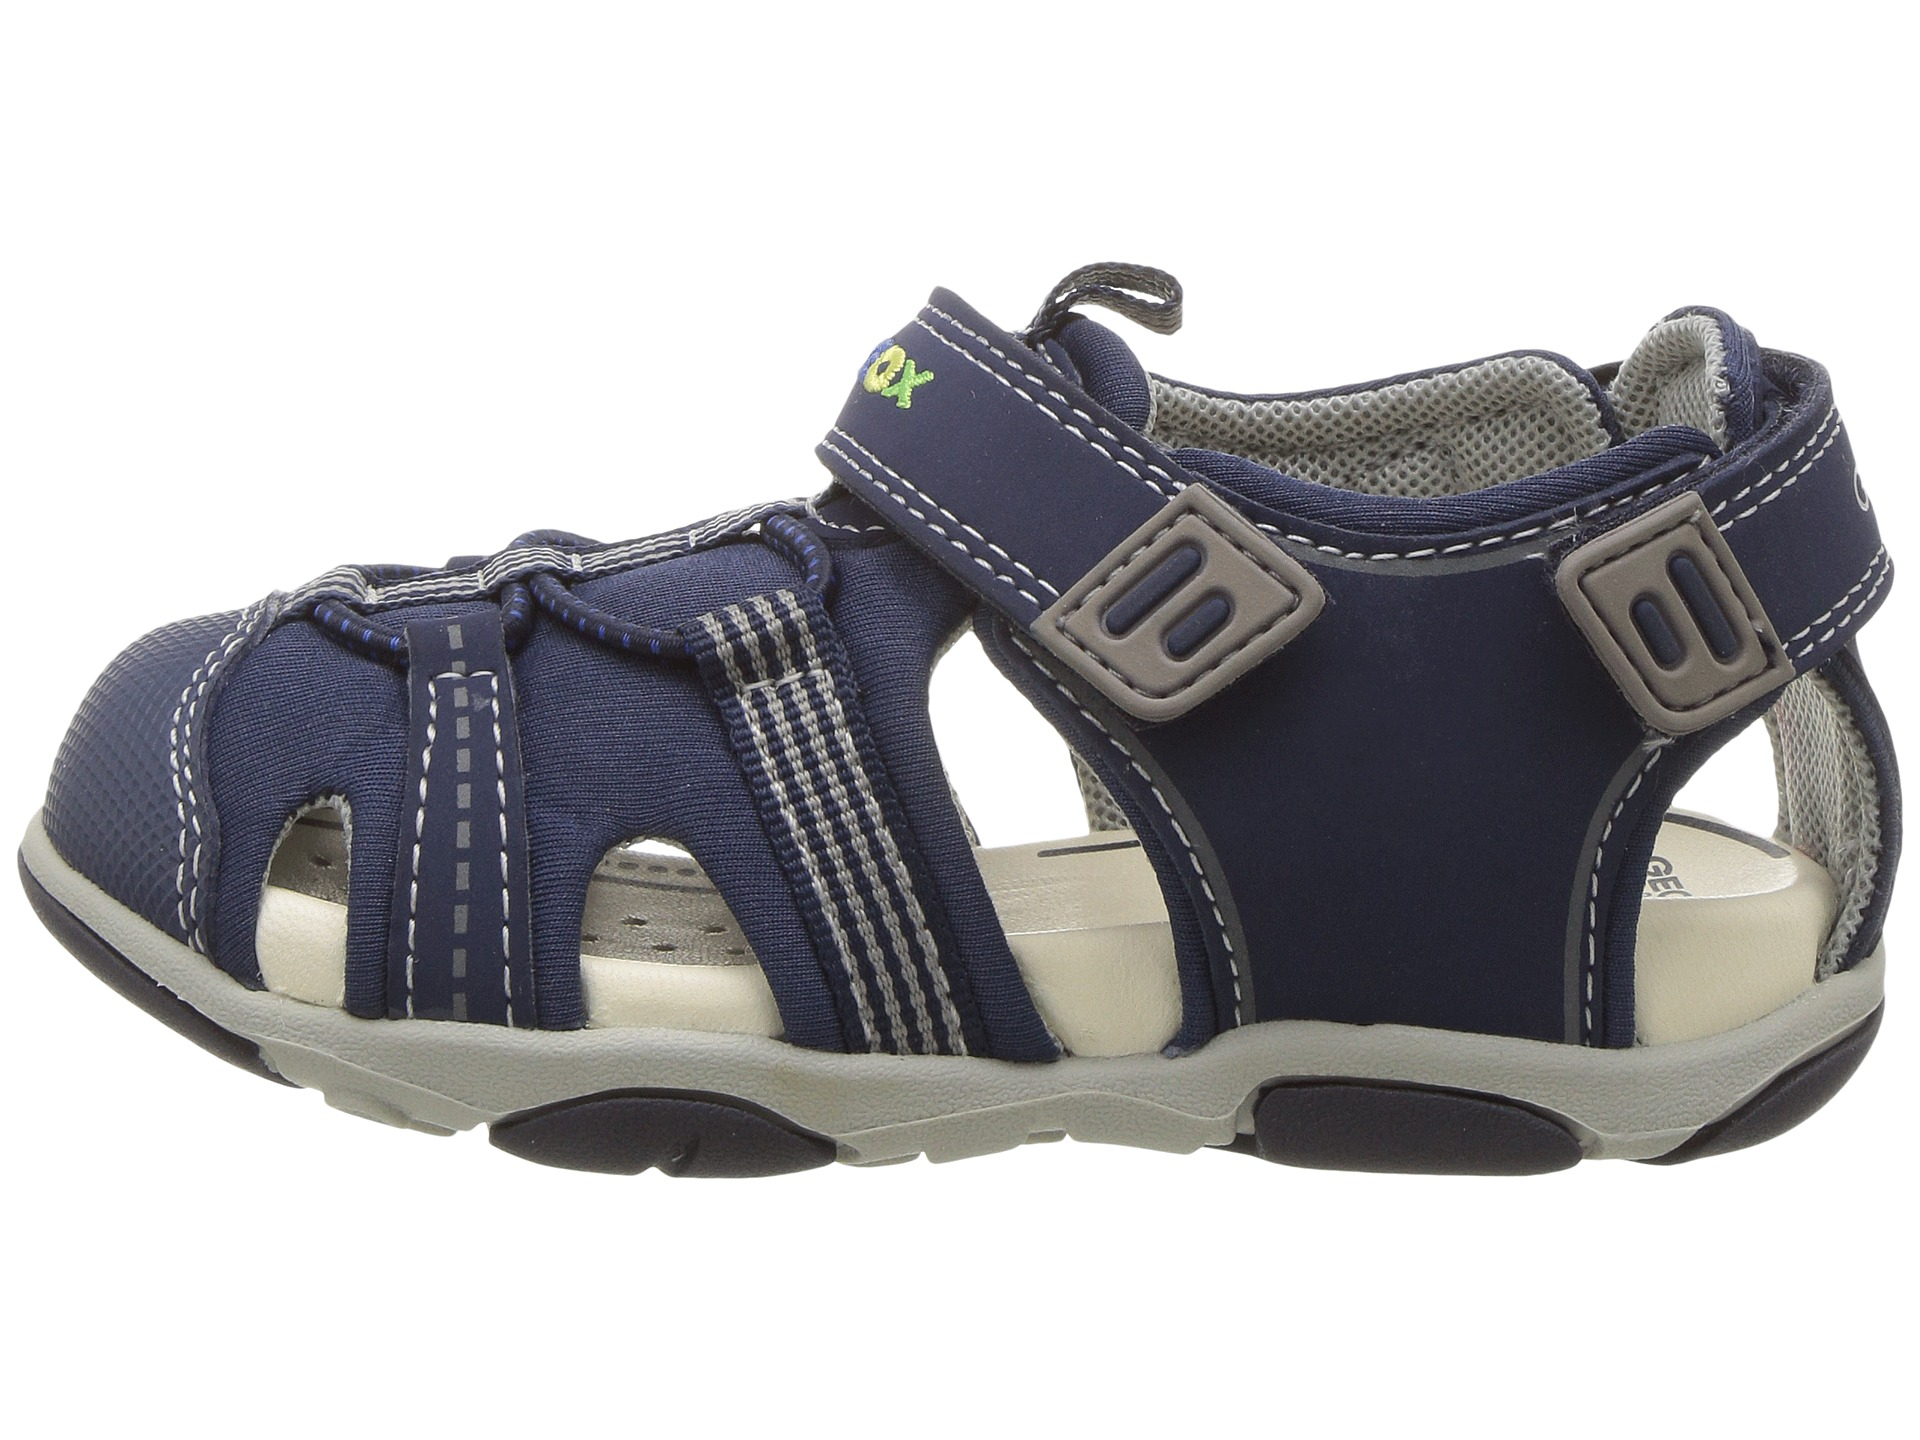 Geox Kids Baby Sandal Agasim Boy 1 (Toddler) at Zappos.com